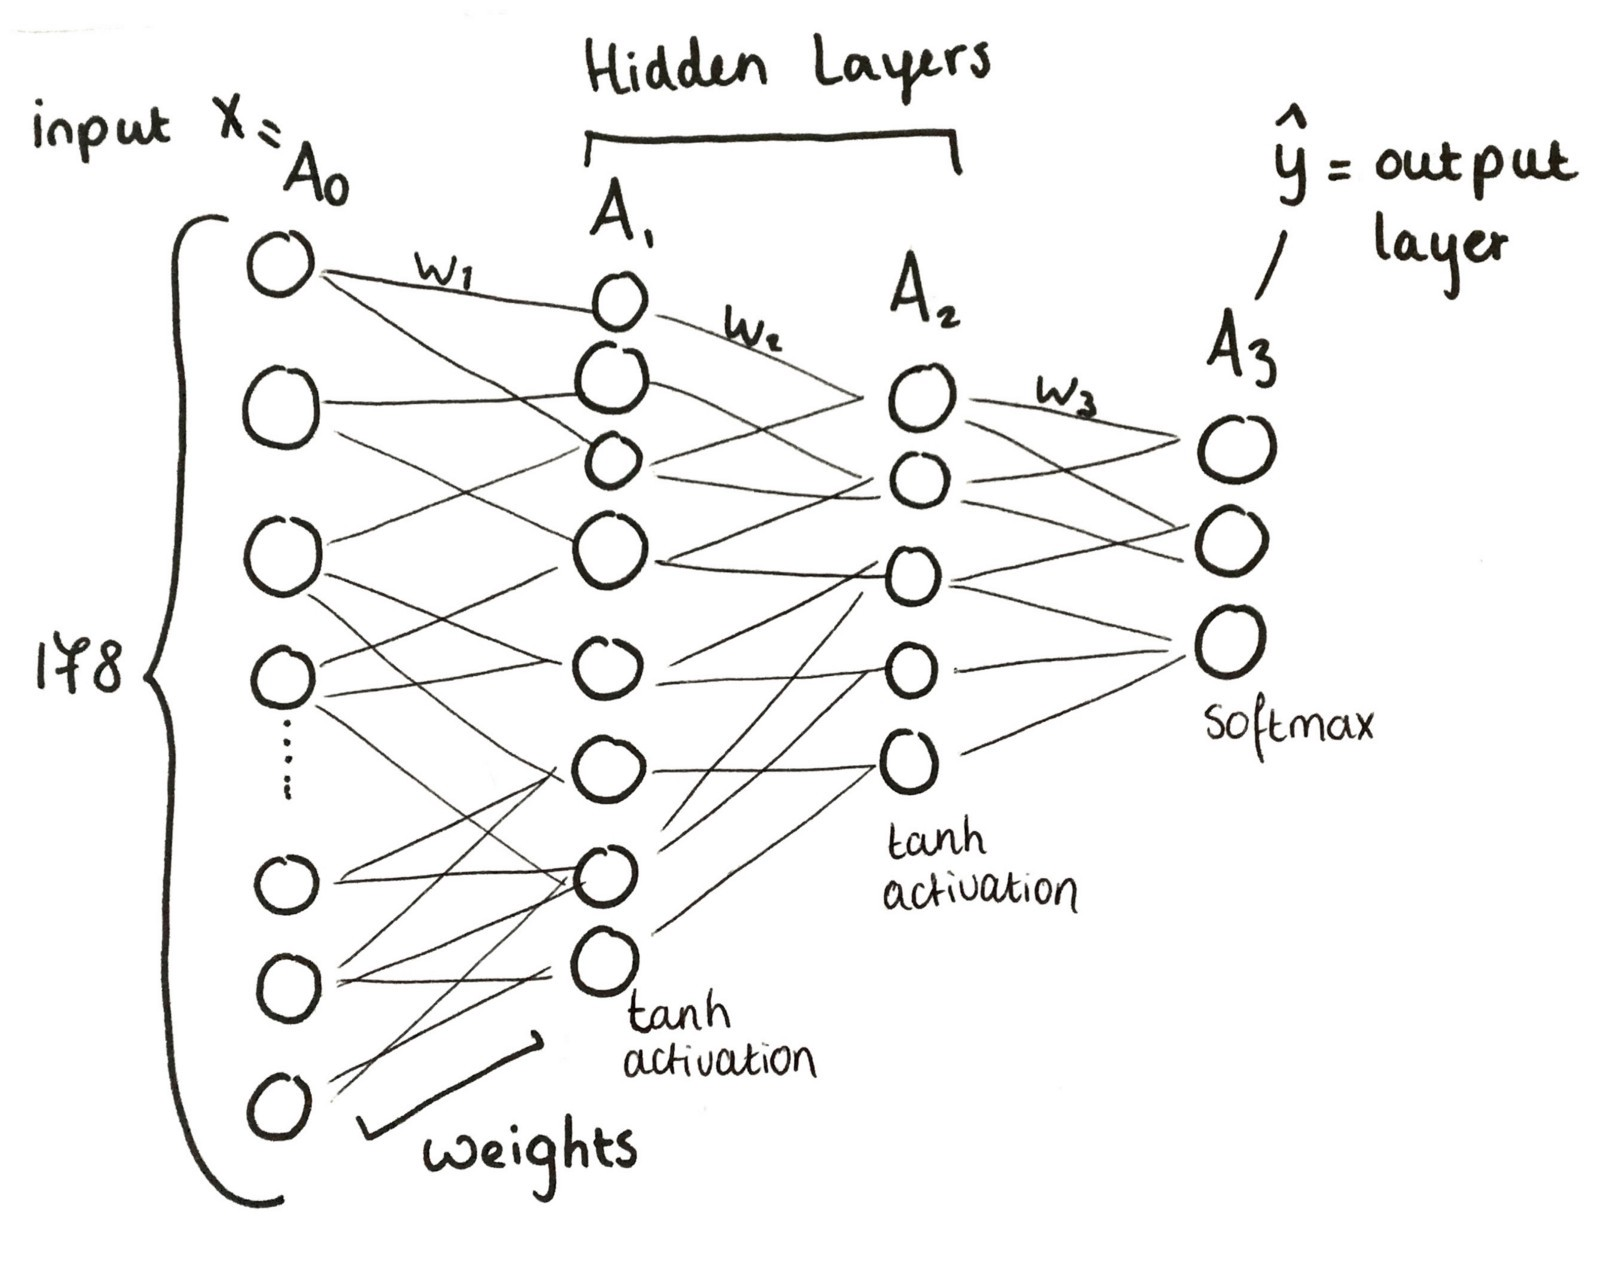 Neural Network from Scratch - Becoming Human: Artificial